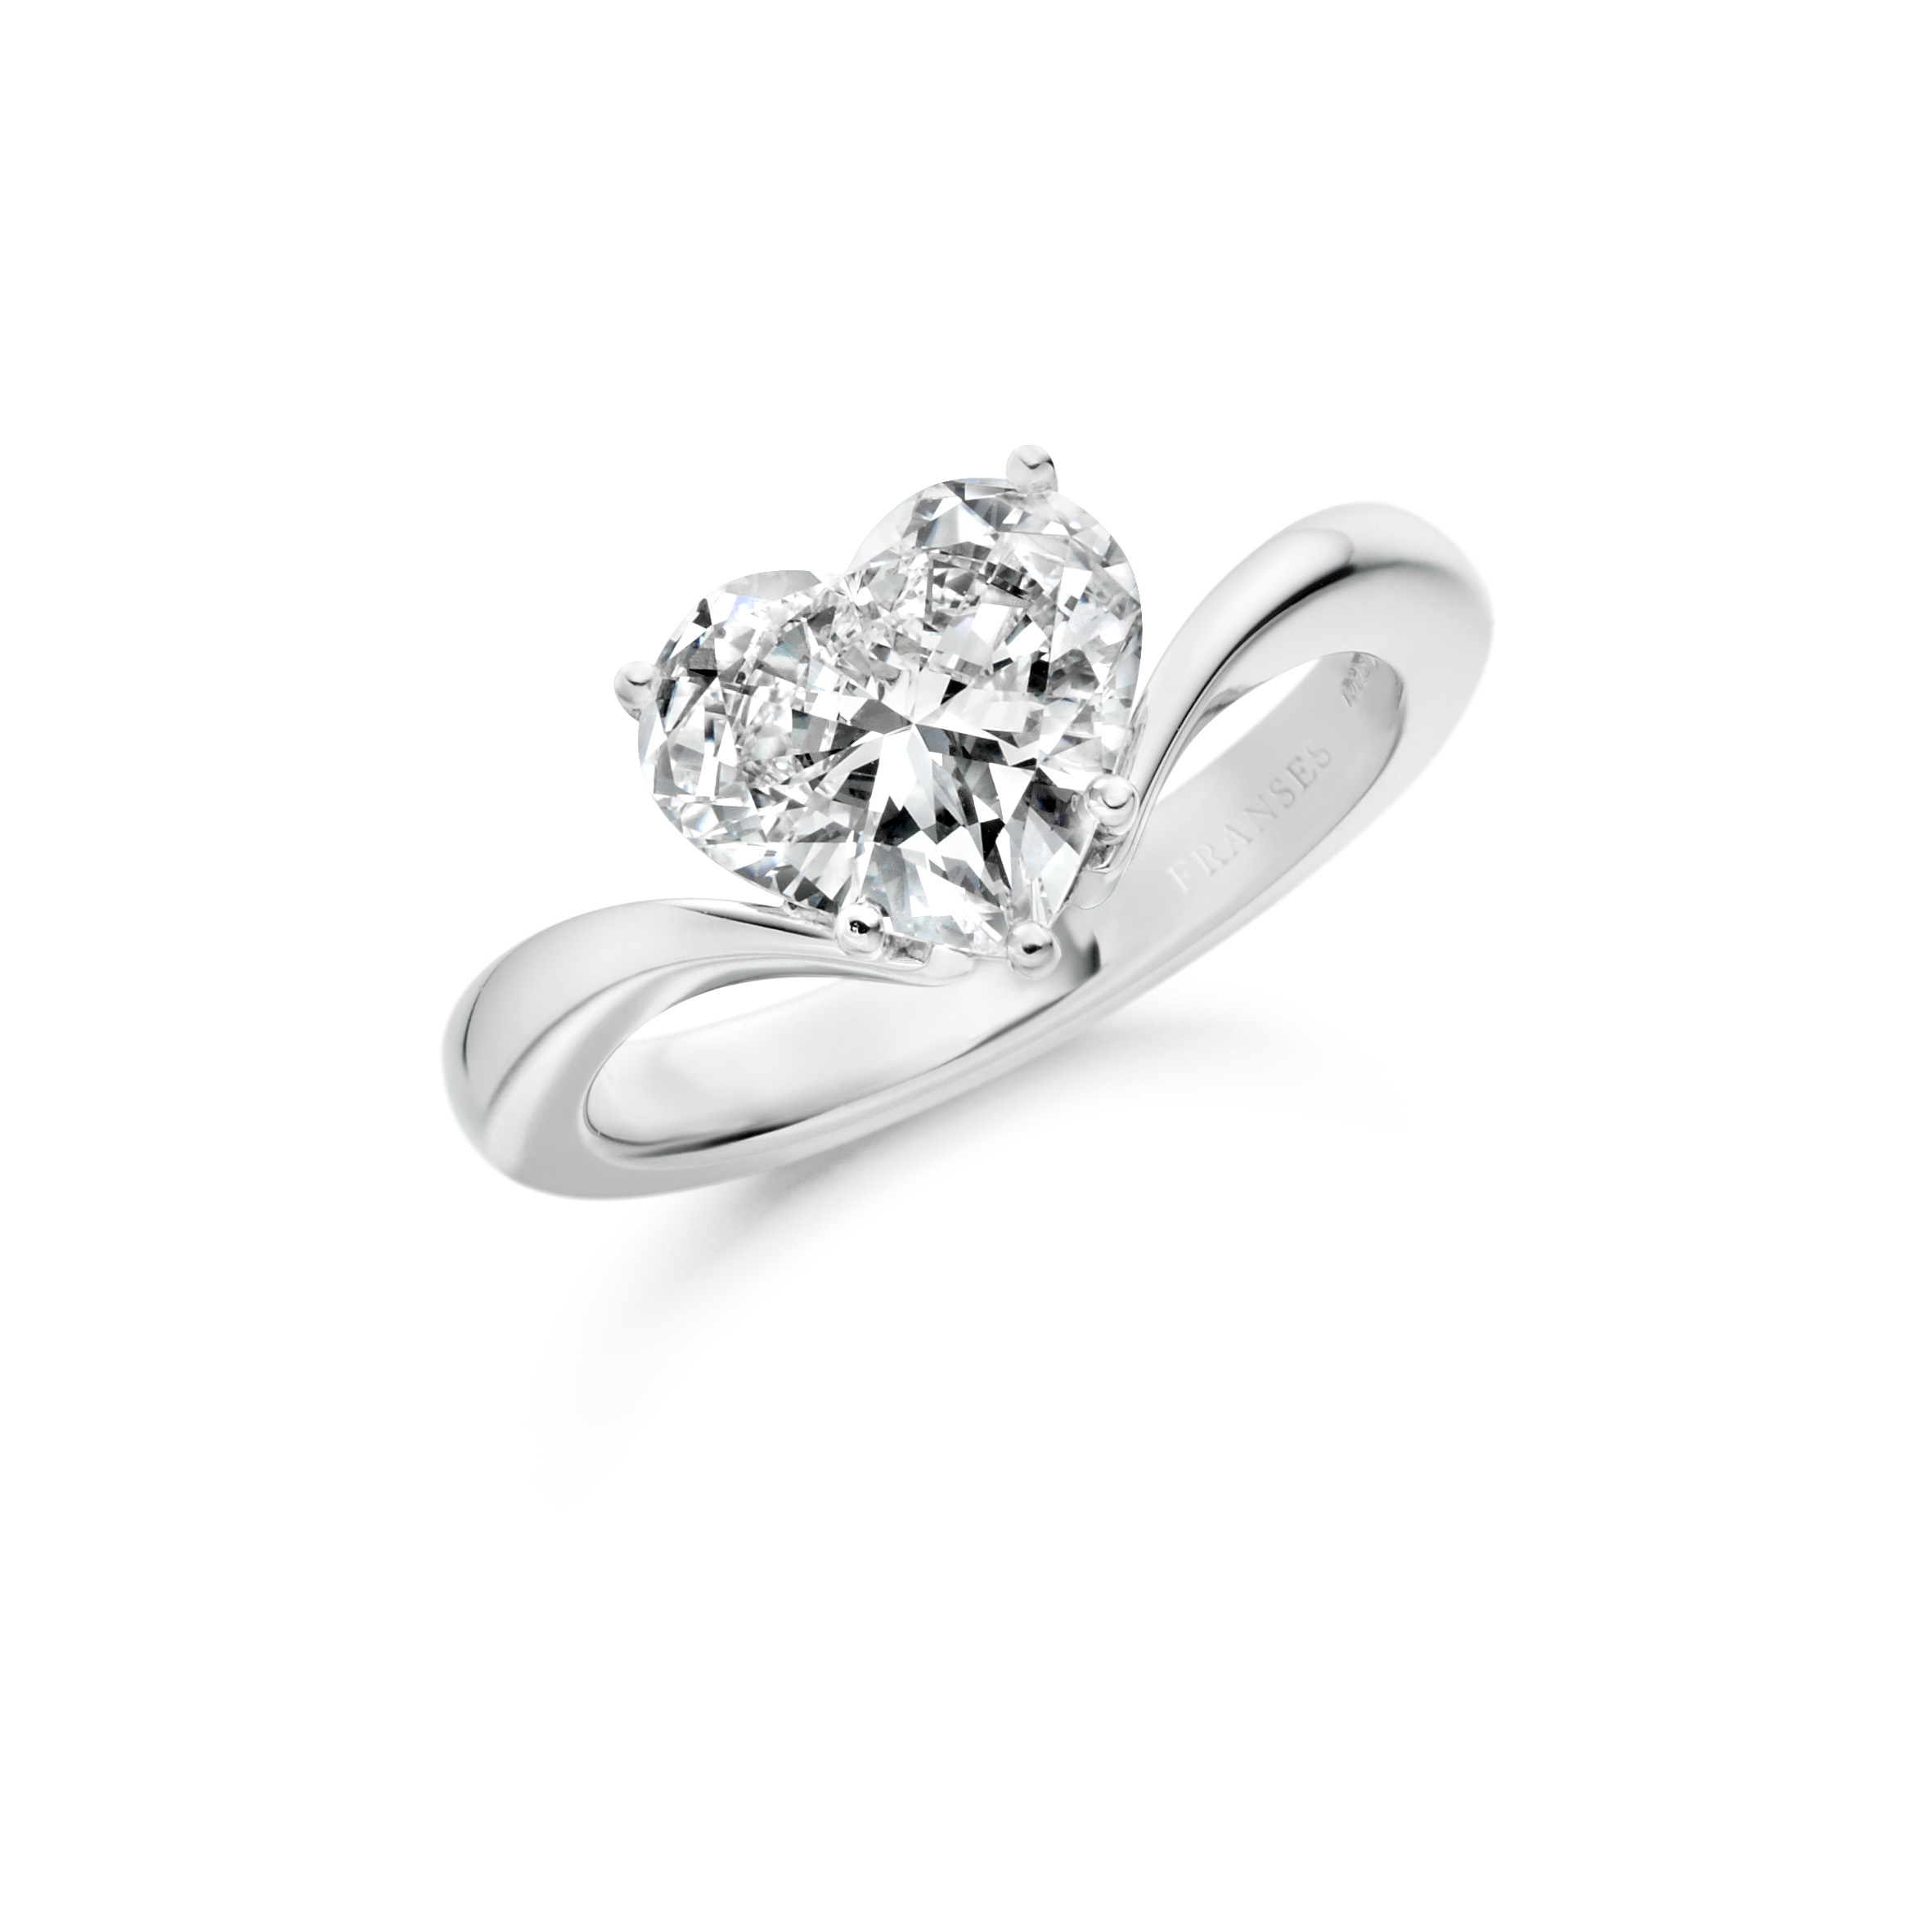 Heart-shaped diamond solitaire